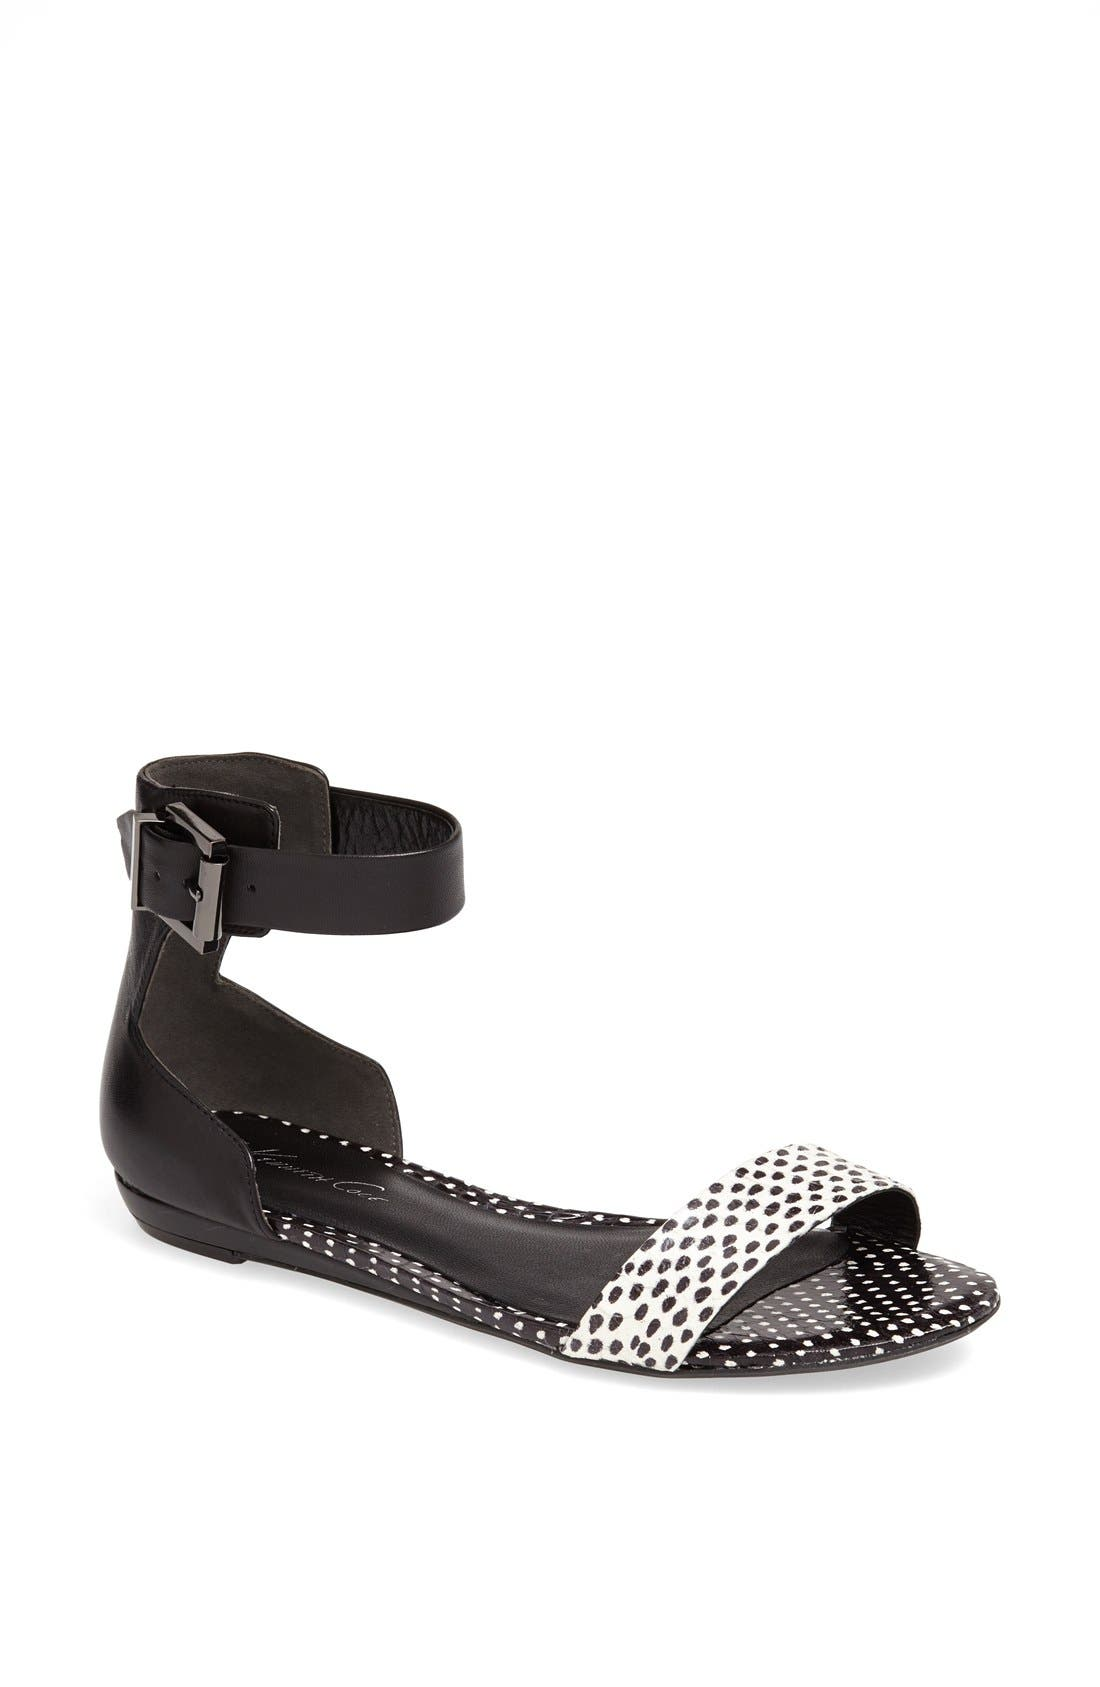 Alternate Image 1 Selected - Kenneth Cole New York 'Essex' Sandal